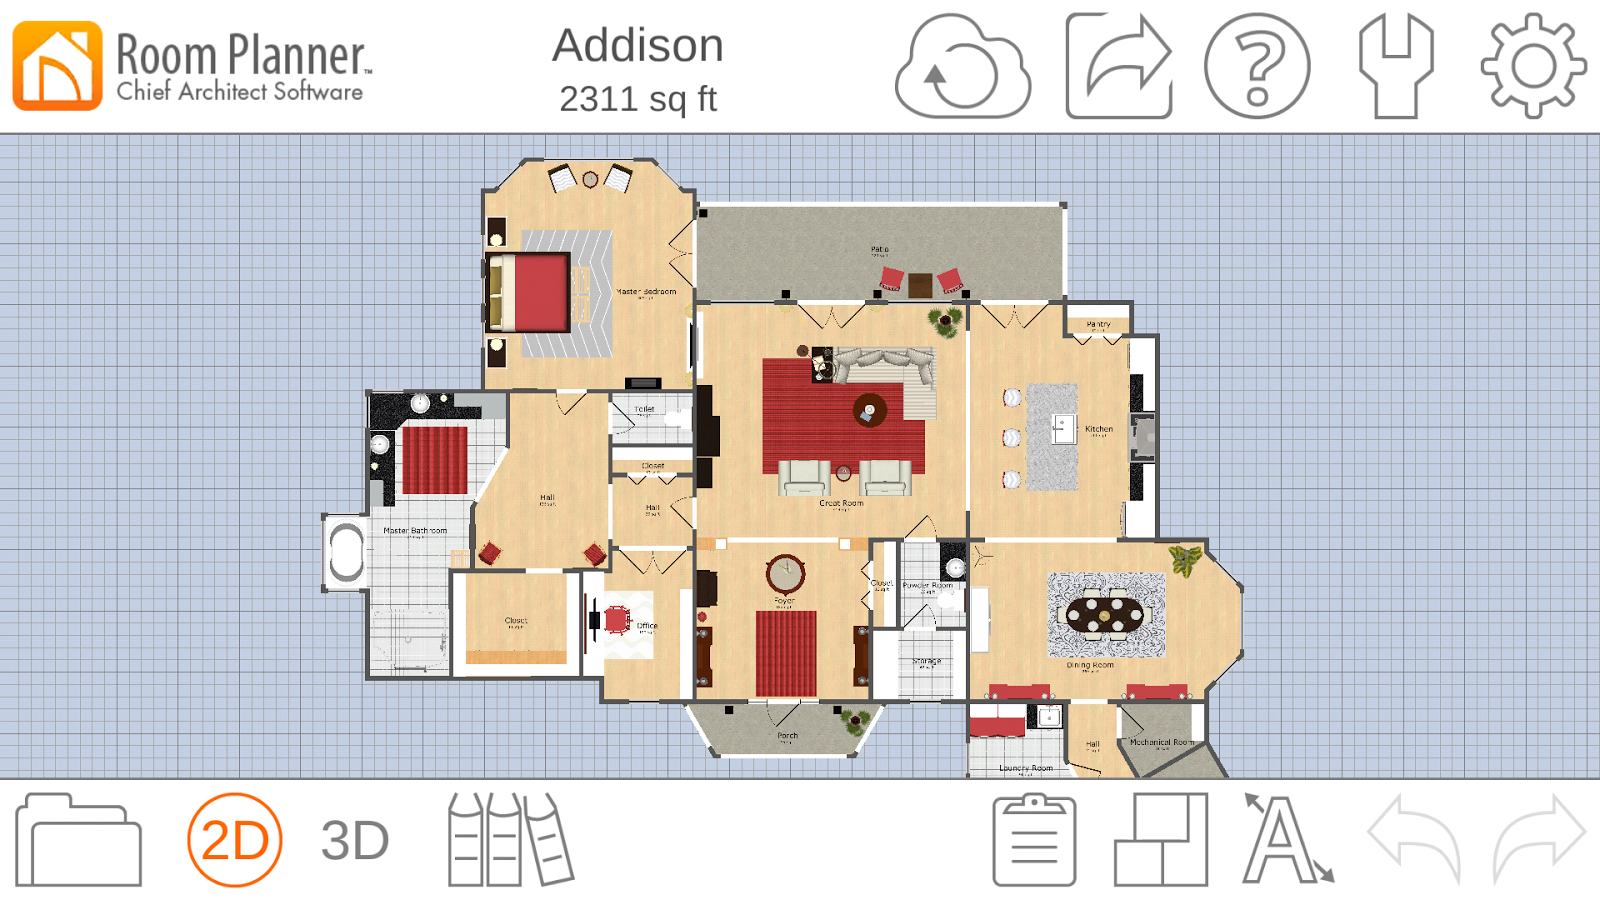 Room planner home design 4 3 0 apk download android for Room planner software free download